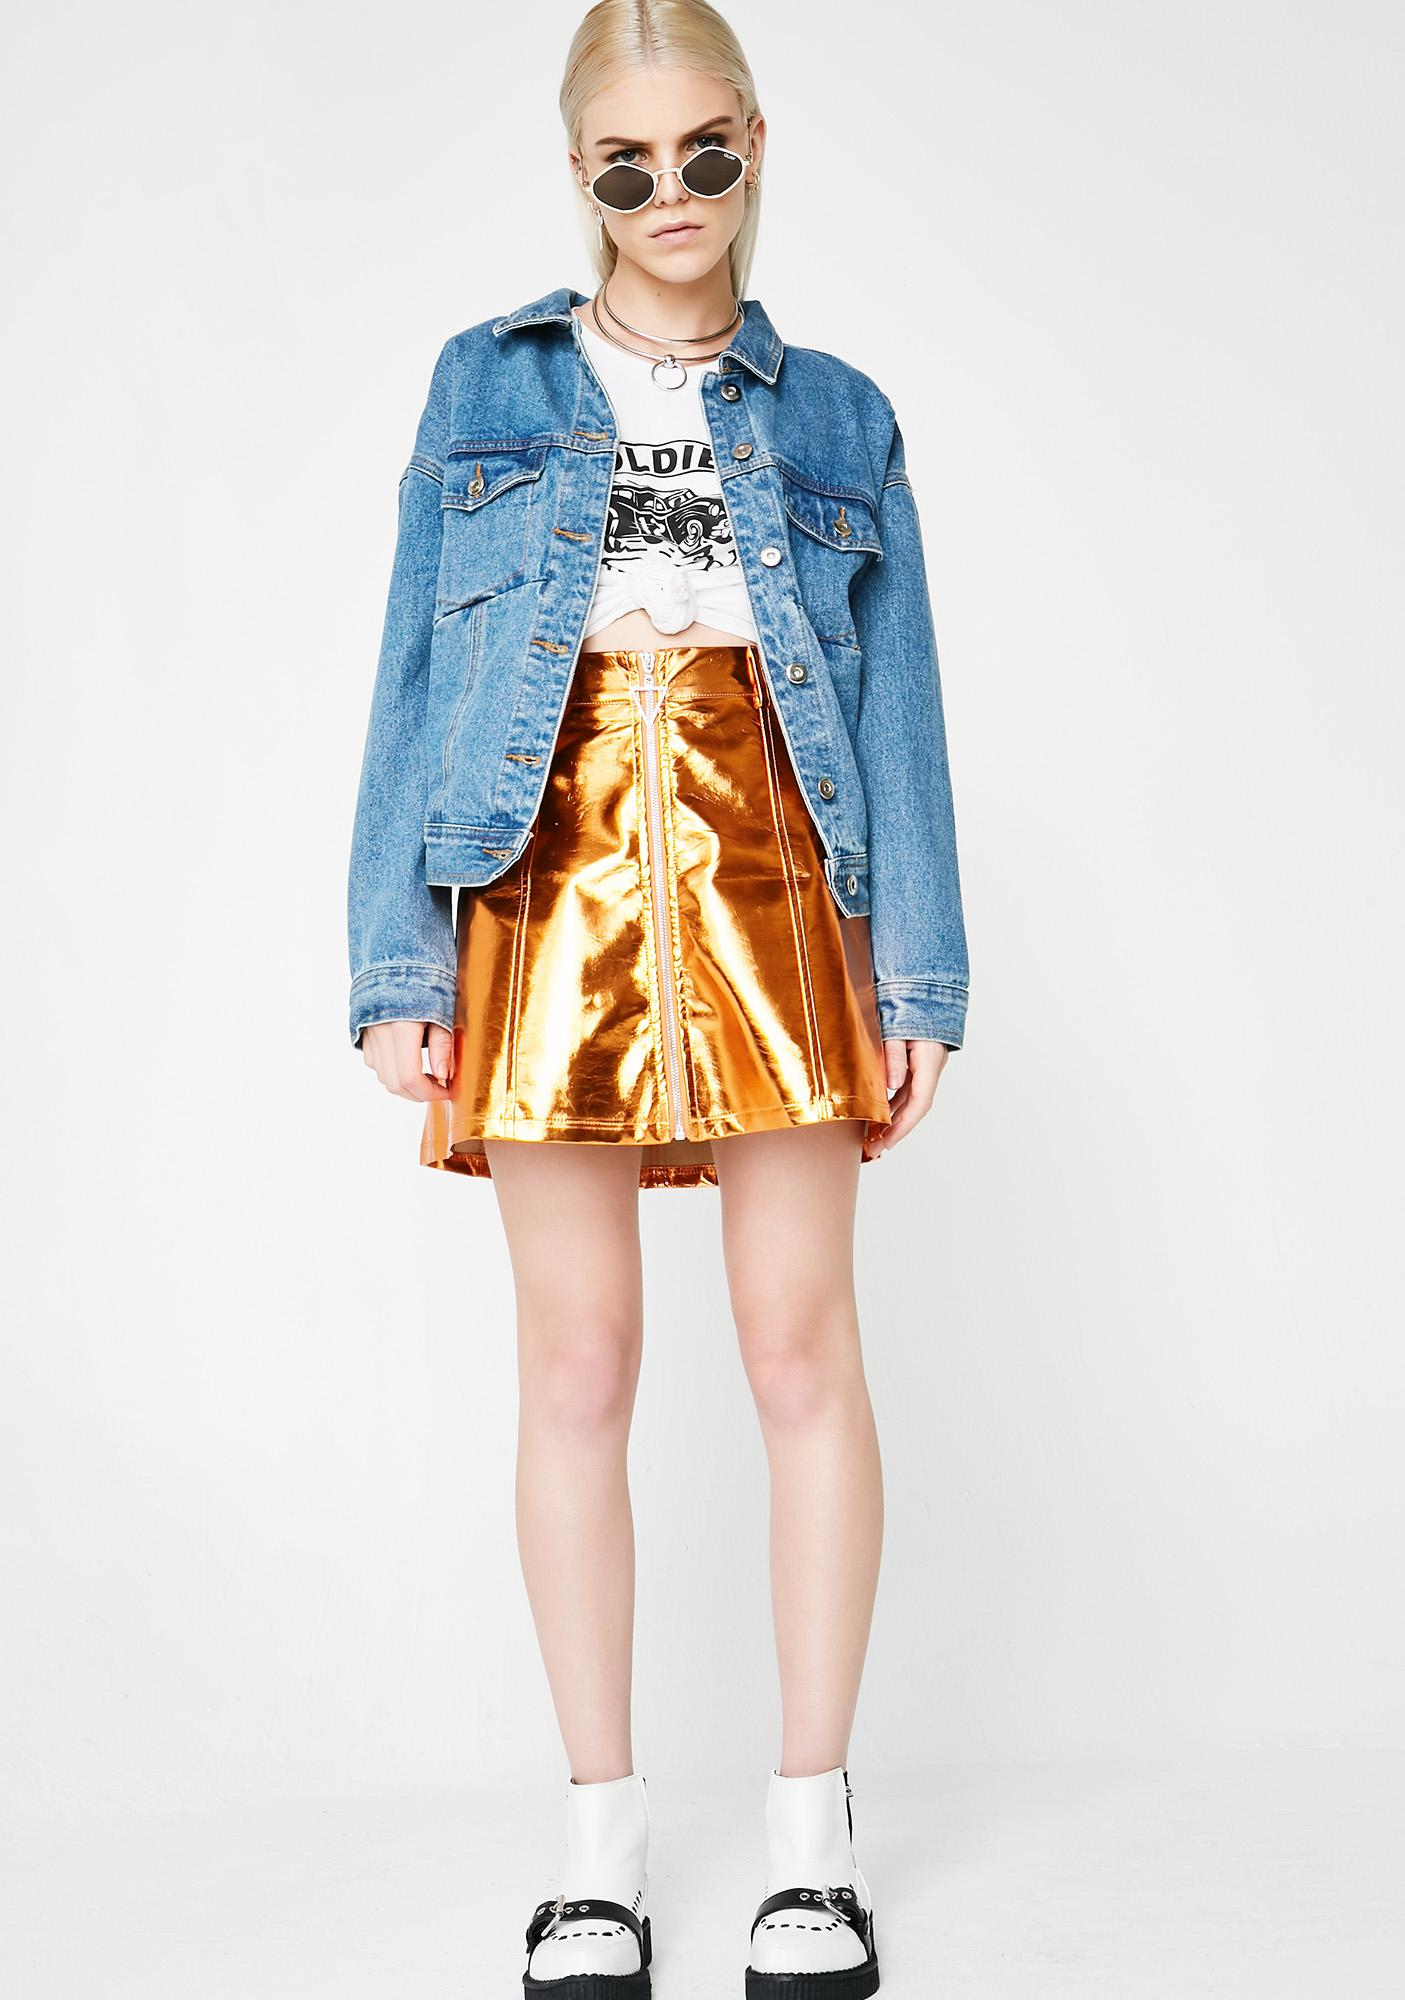 As I Am You Drive Me Crazy Skirt